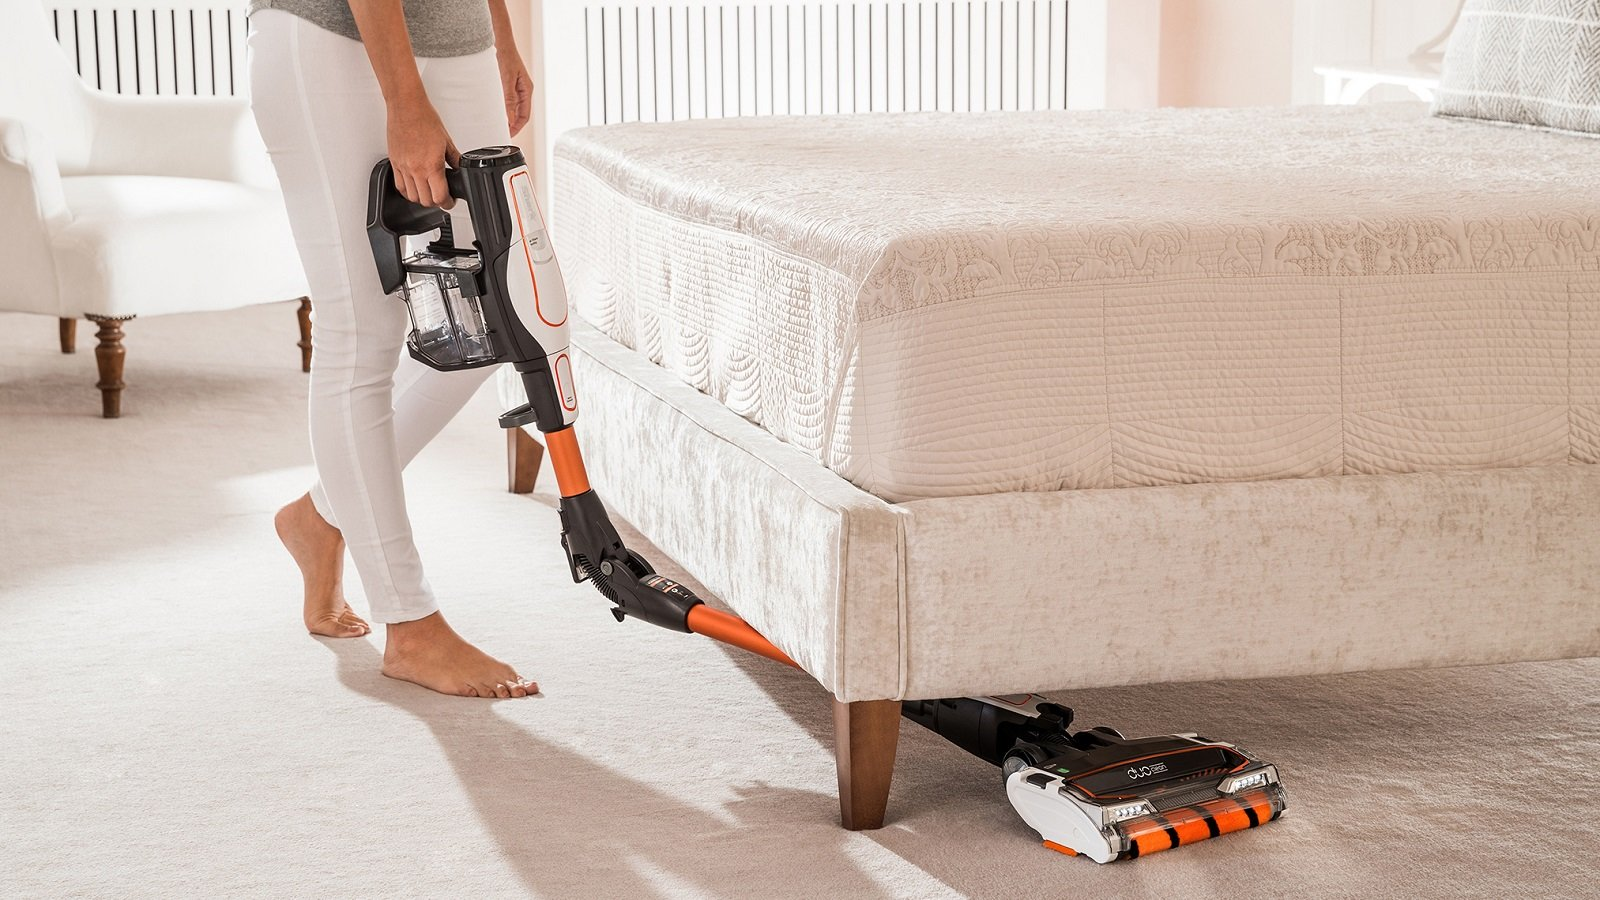 shark duoclean cordless if250uk review cleans the parts. Black Bedroom Furniture Sets. Home Design Ideas